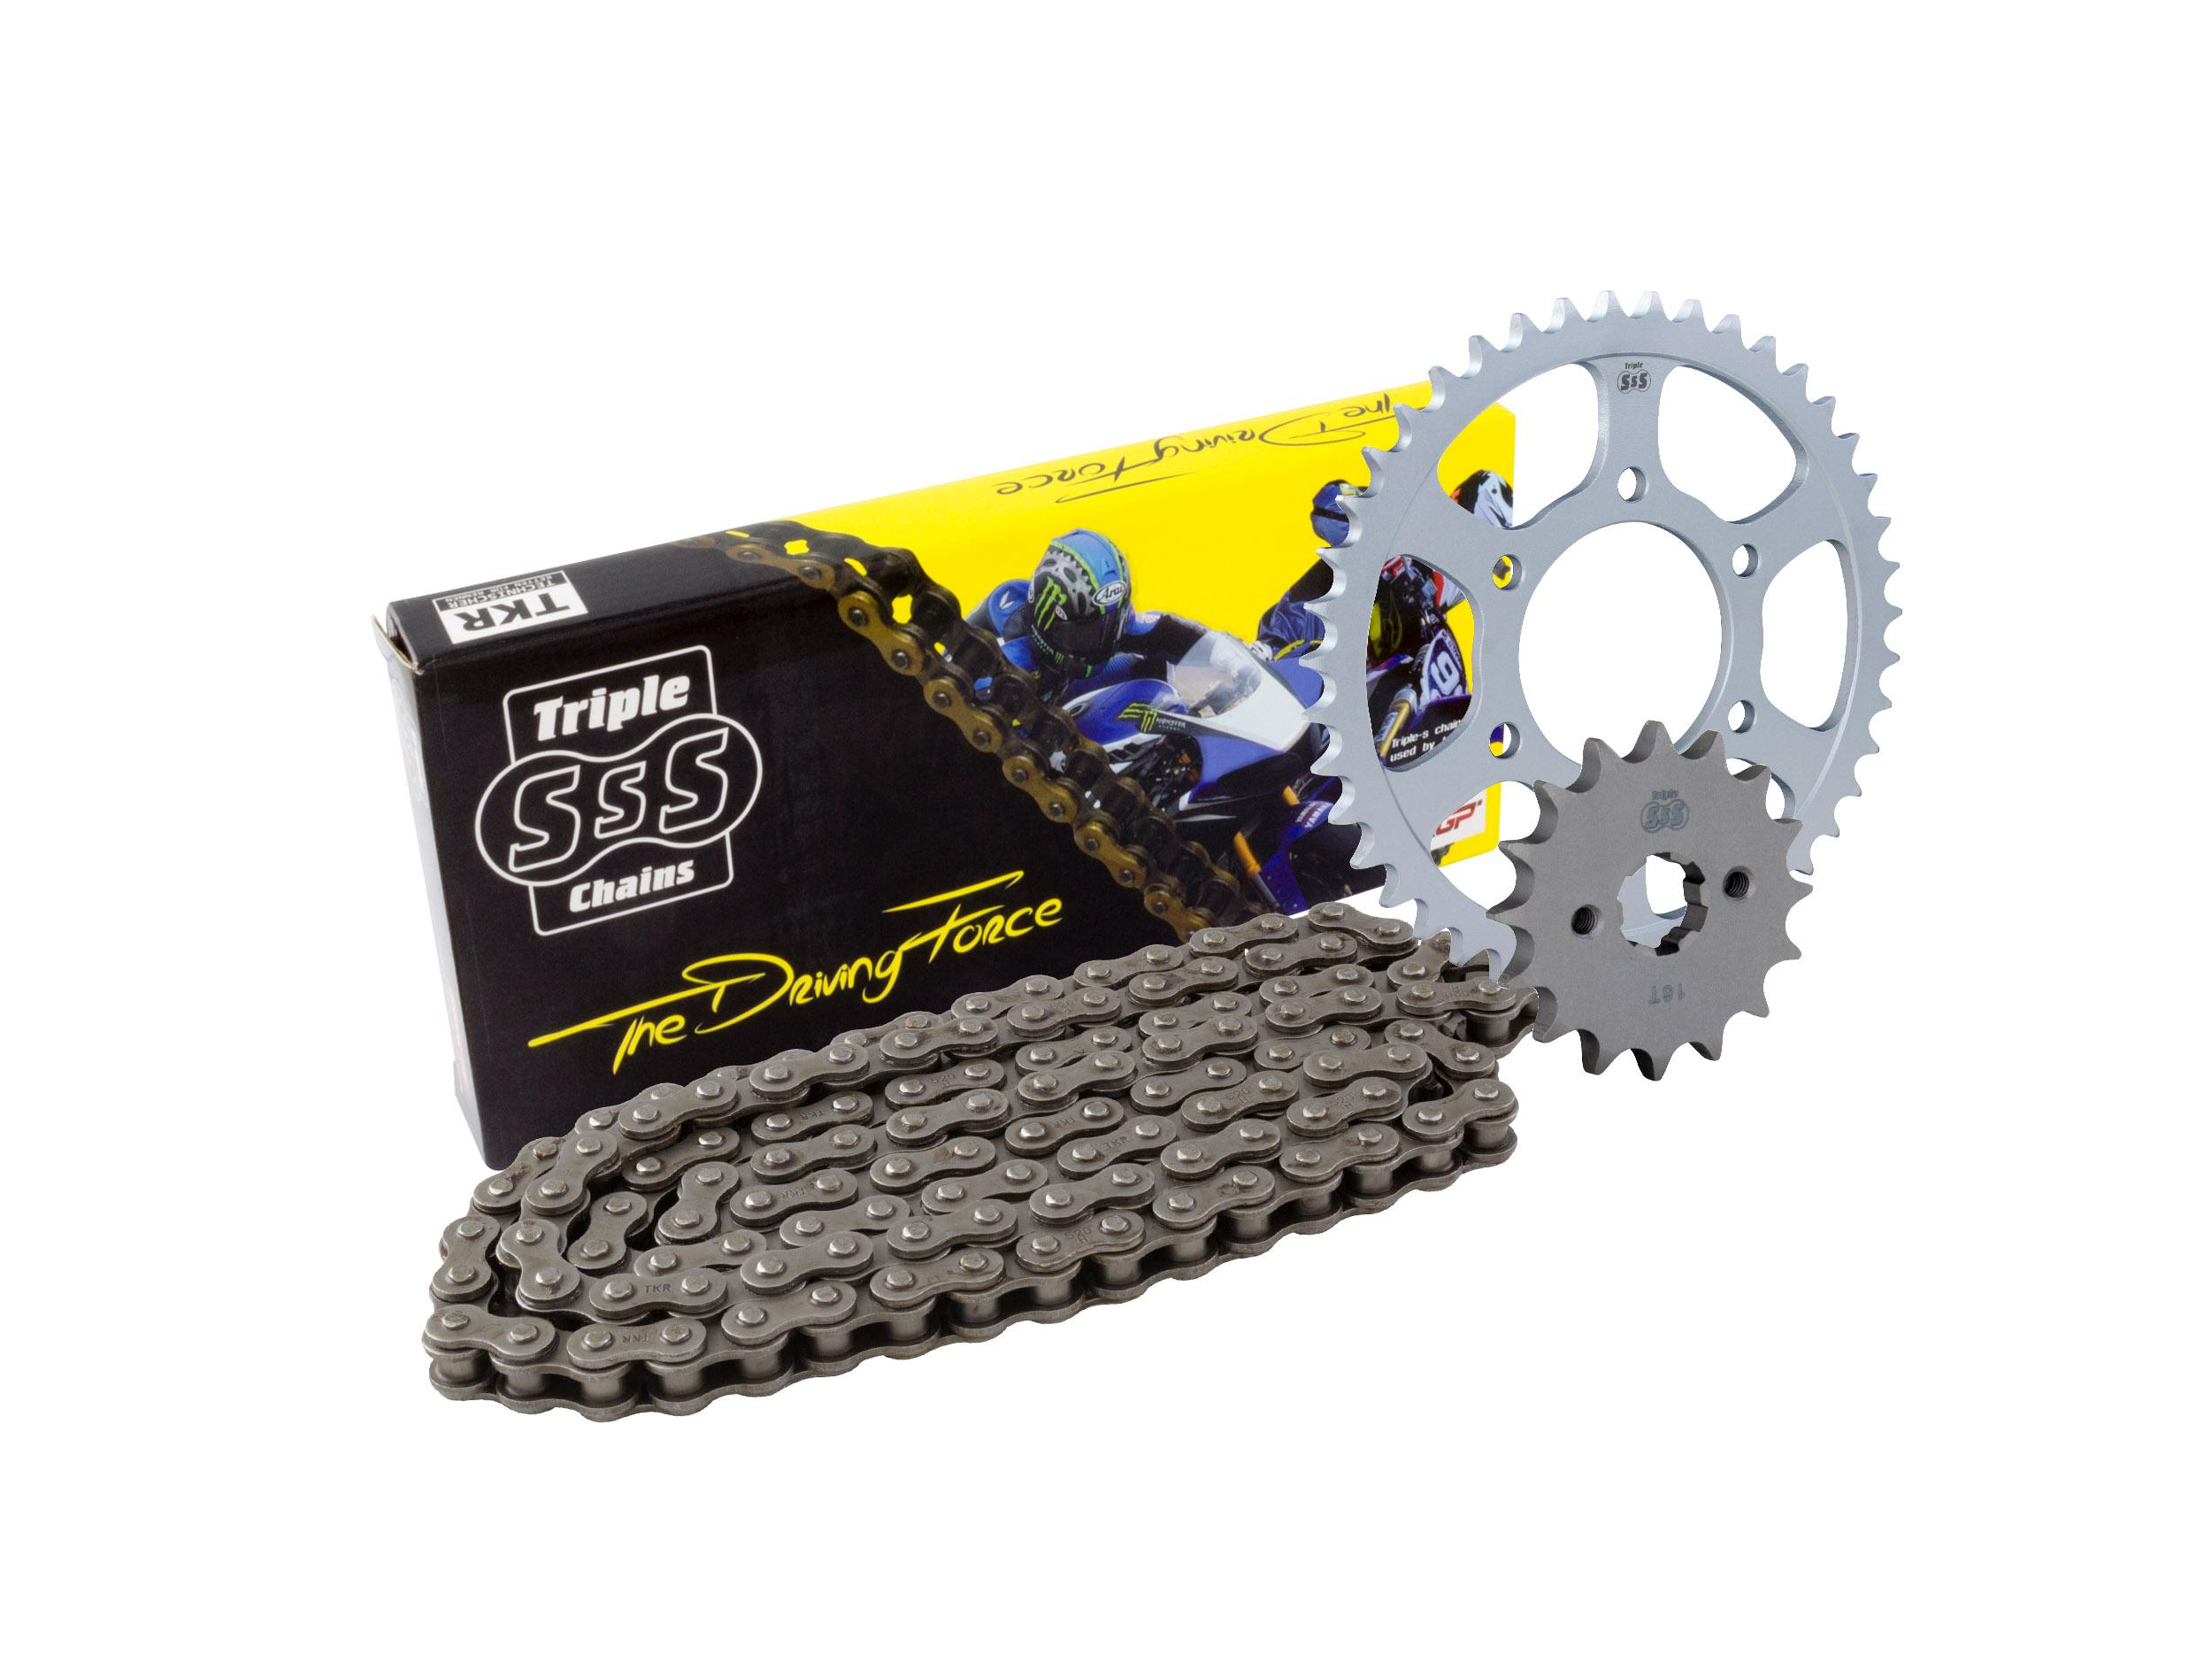 Cagiva 125 Mito Evolution 00-04 Chain & Sprocket Kit: 14T Front, 39T Rear, HD Chain 520H 114Link